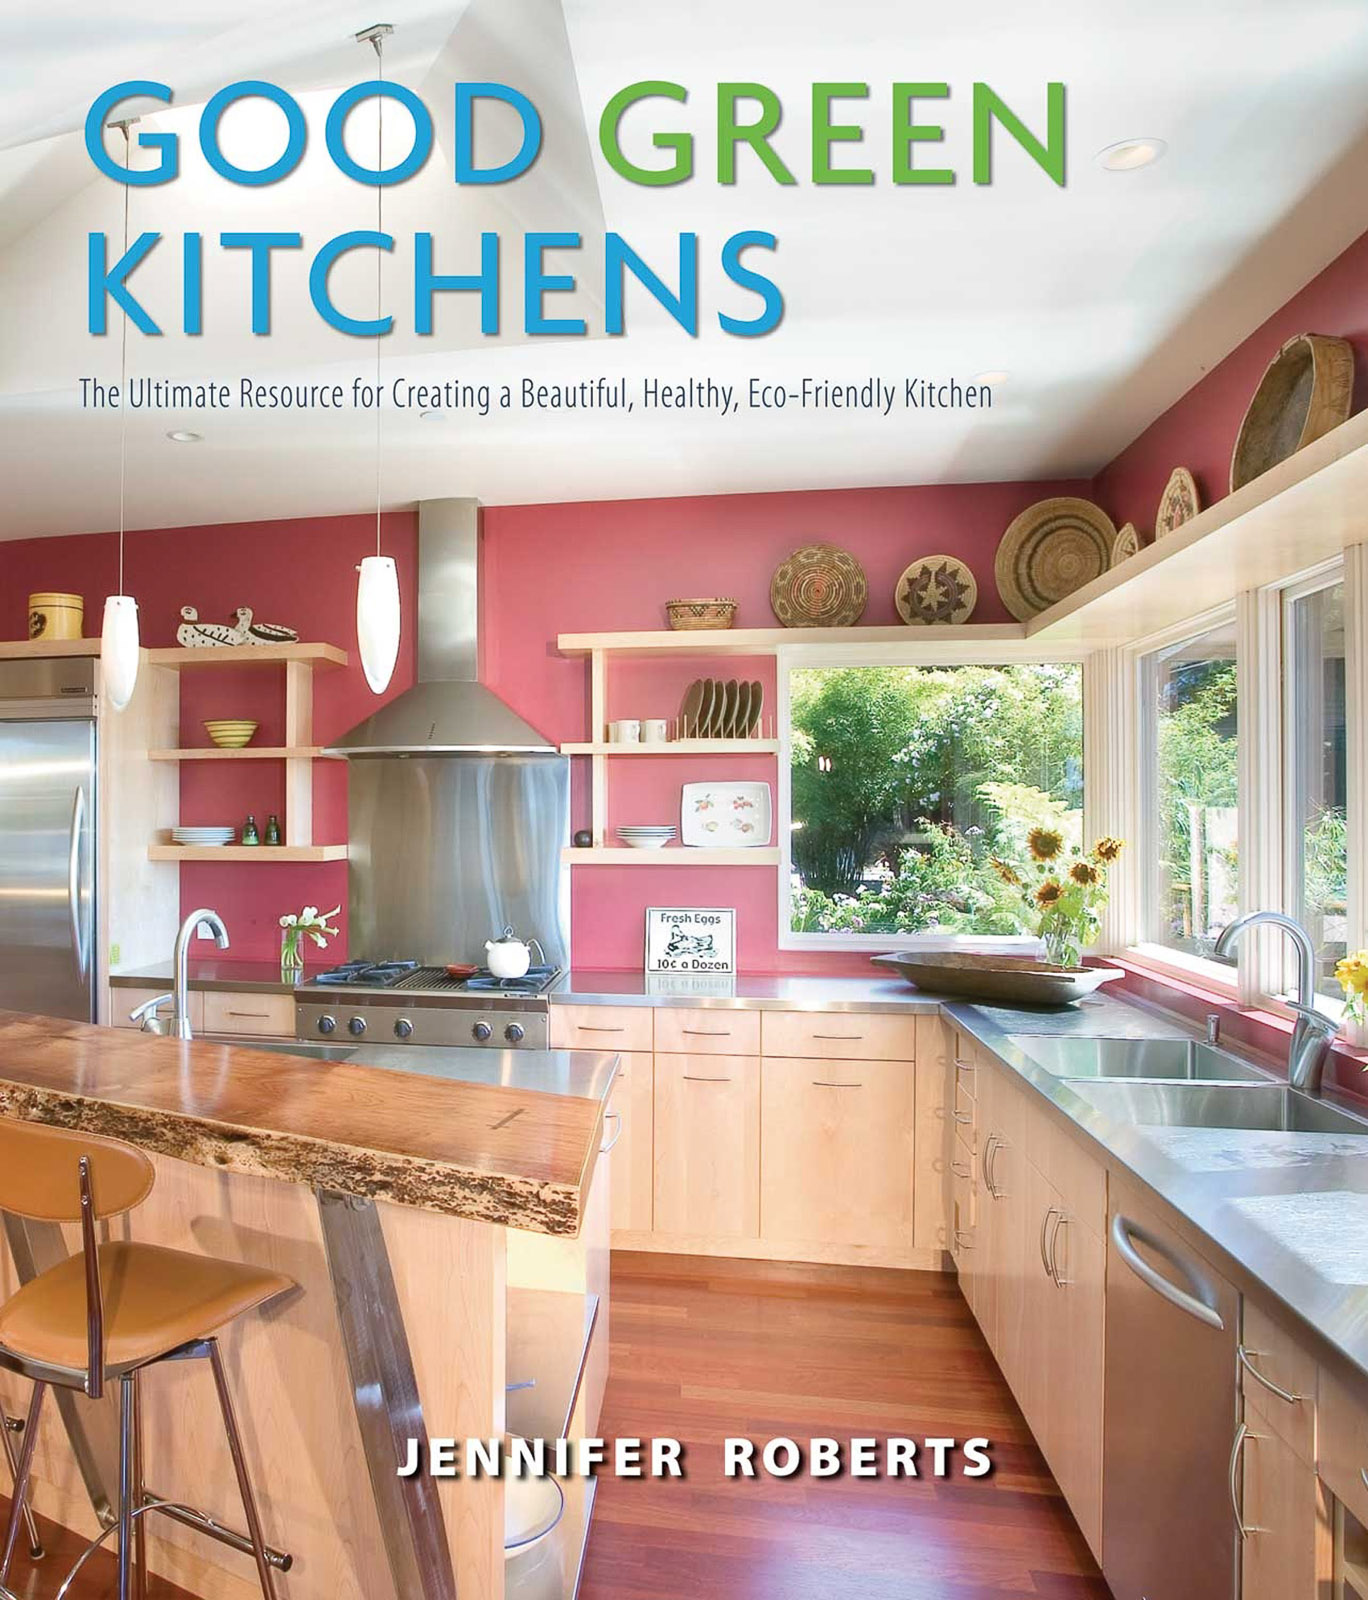 Good_Green_Kitchens02.jpg